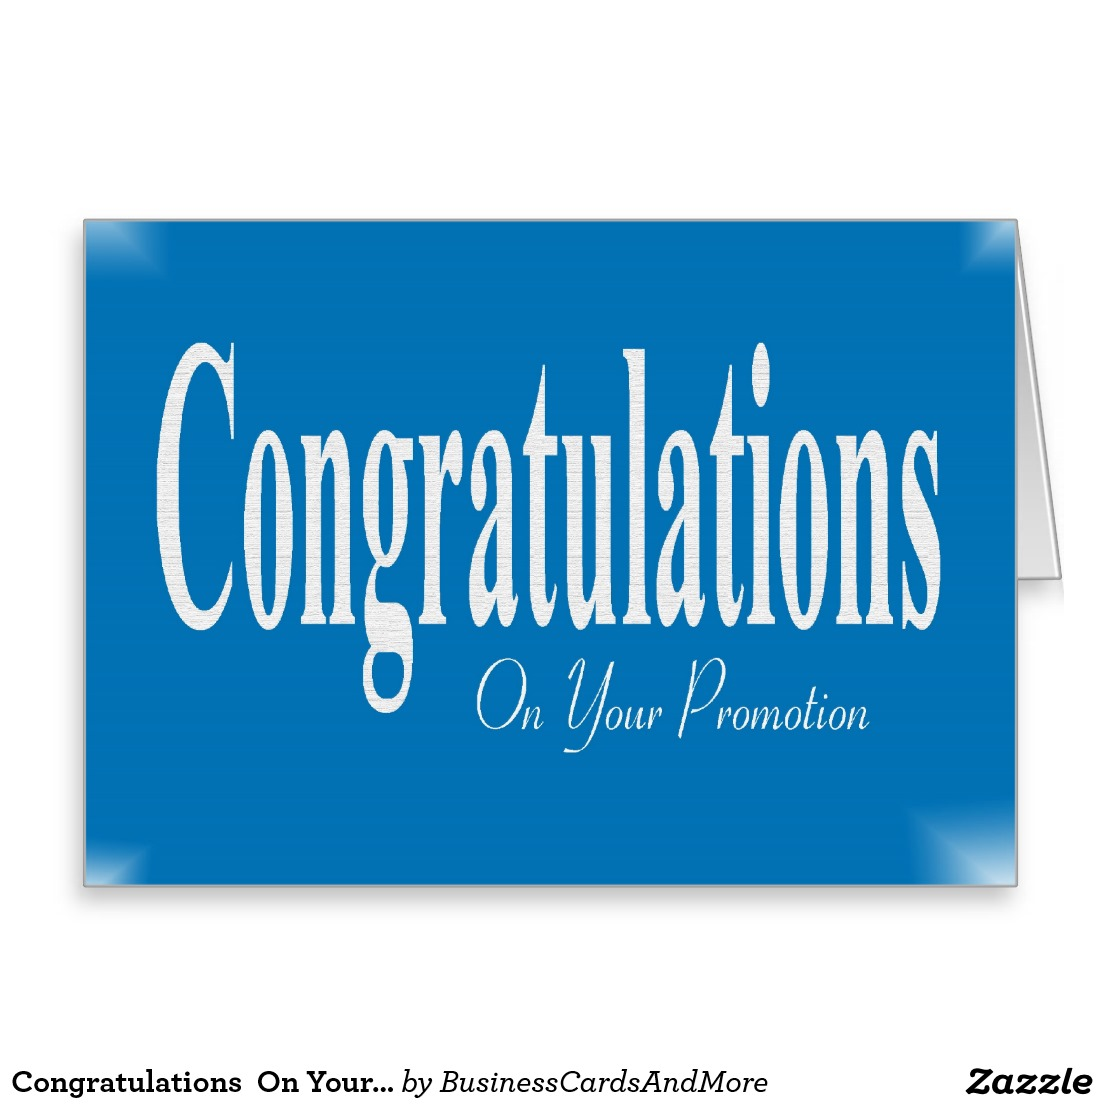 Congratulations On Your Promotion Wishes Card Image